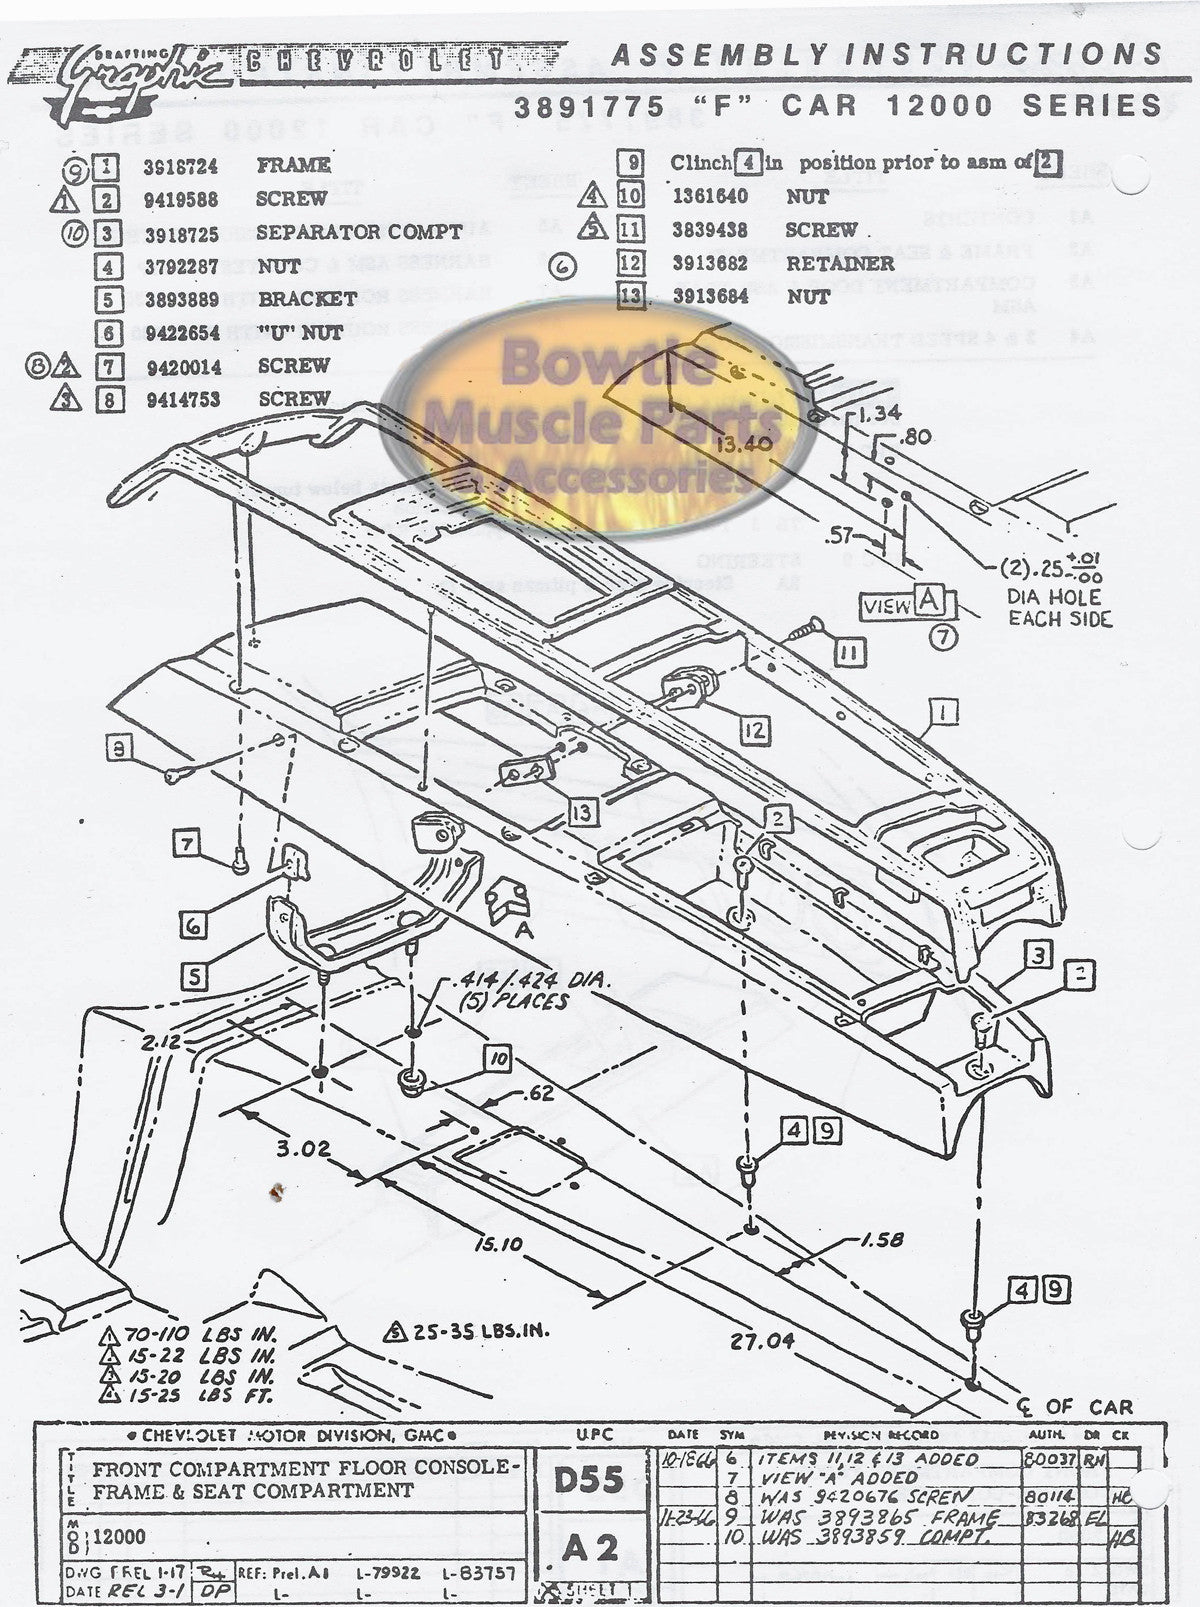 1967 67 camaro factory assembly manual z28 ss rs 418 pages rh bowtiemuscleparts com 65 Camaro 1967 camaro factory assembly manual